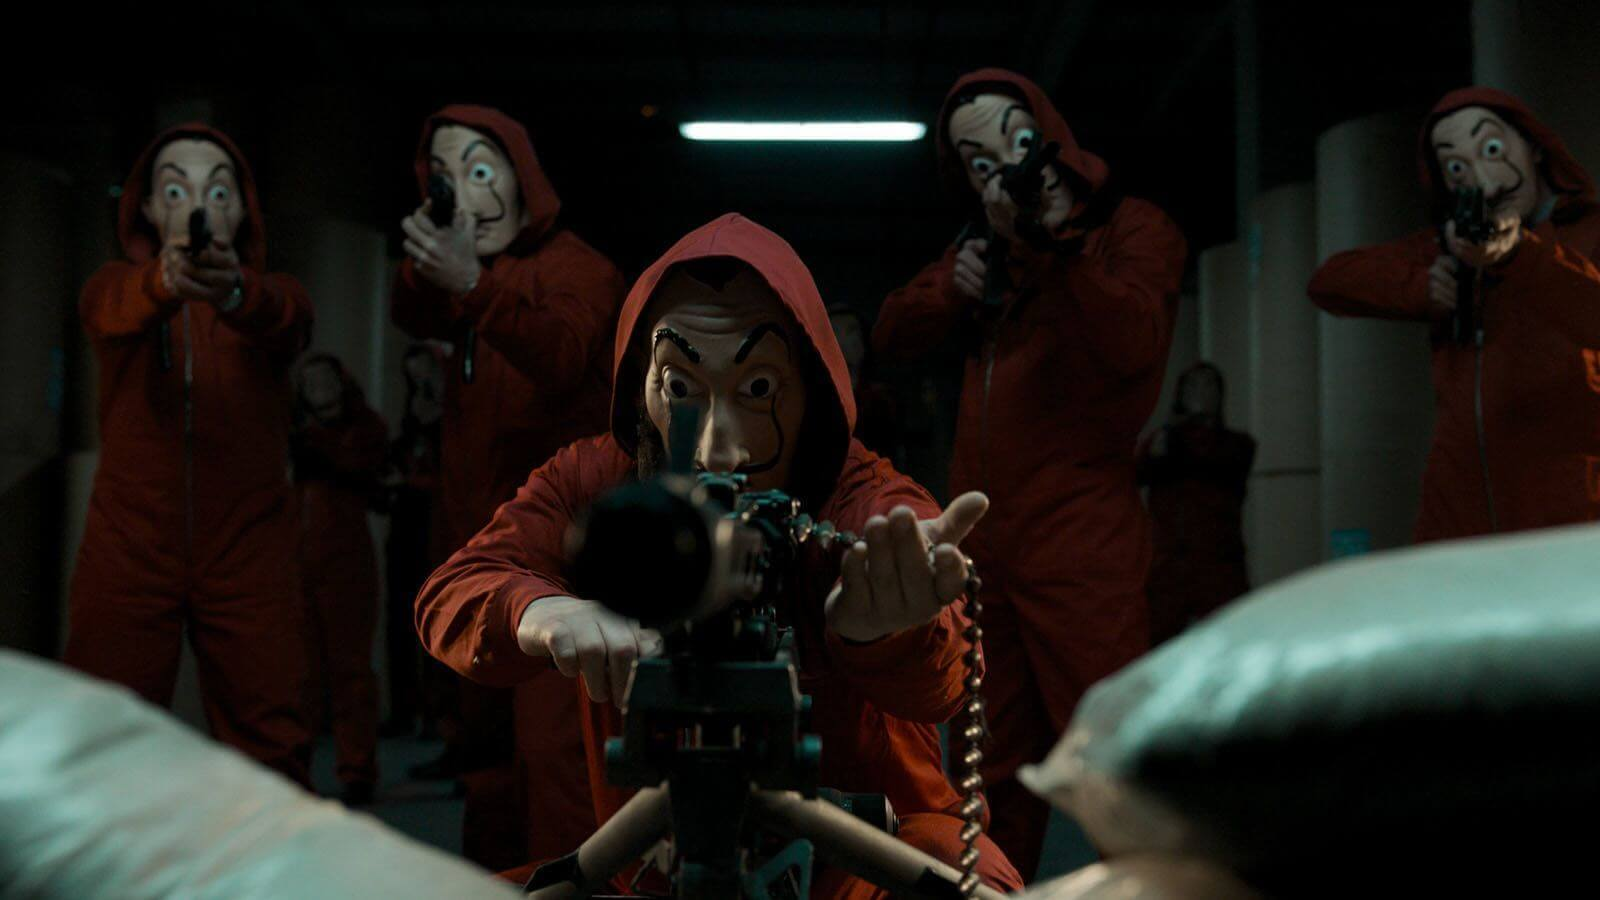 6 Facts you didn't know about La Casa De Papel, aka Money Heist